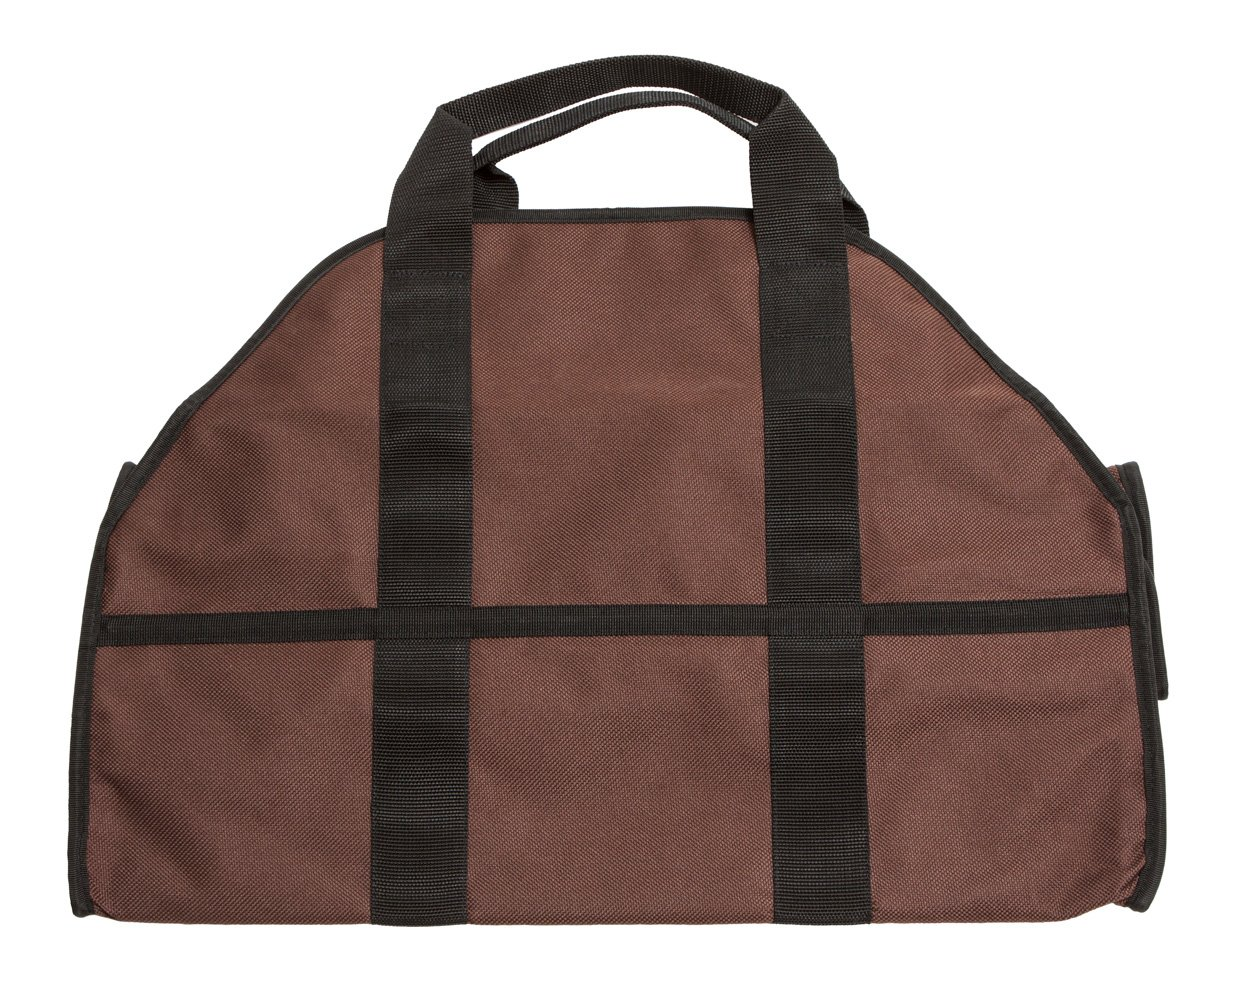 amazoncom premium firewood carrier u0026 log tote by sc lifestyle brown home u0026 kitchen - Firewood Carrier